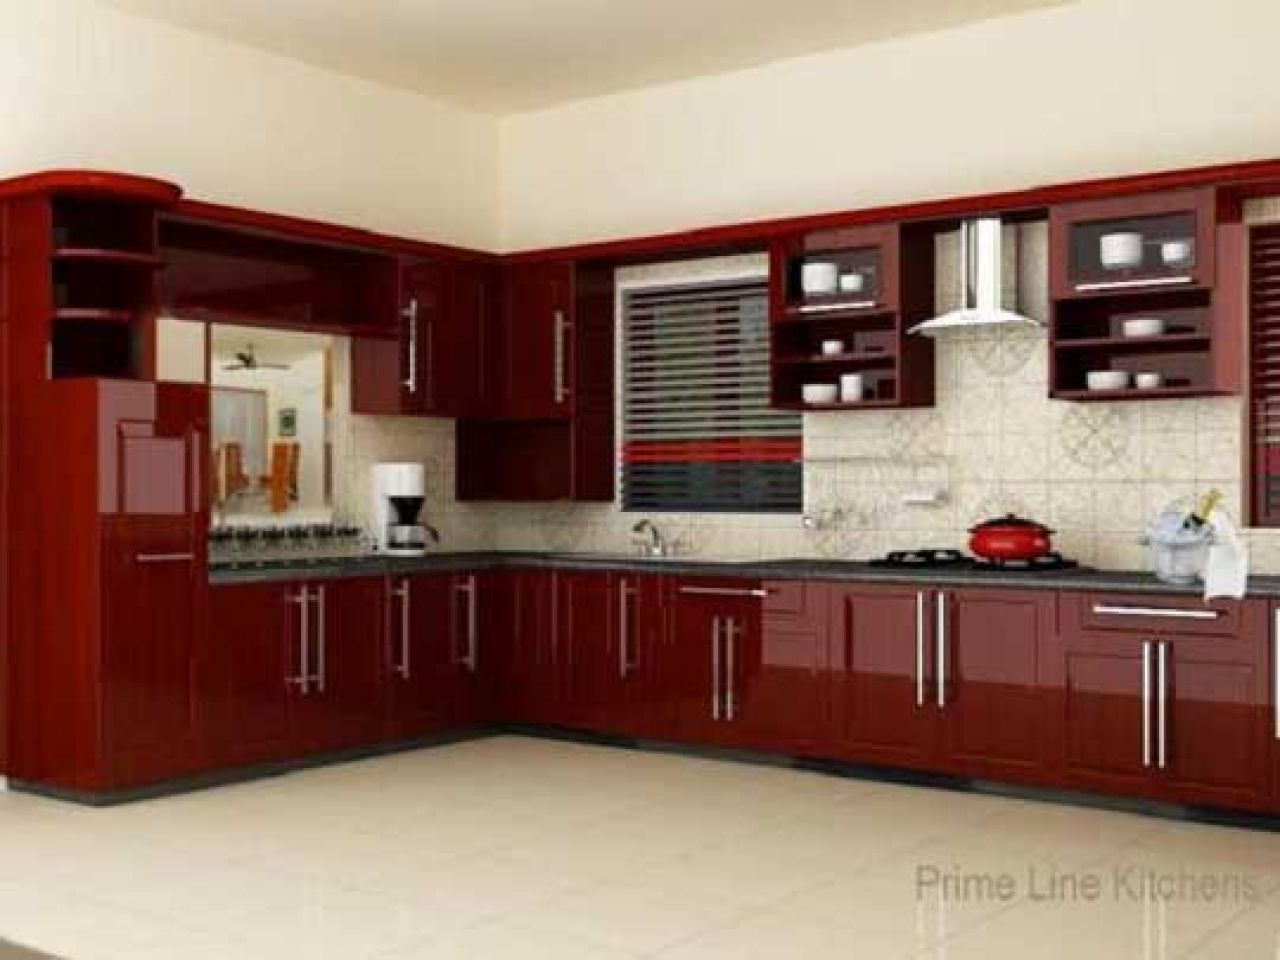 New model kitchen design kerala kitchen interior design modern pinterest for Latest model kitchen designs